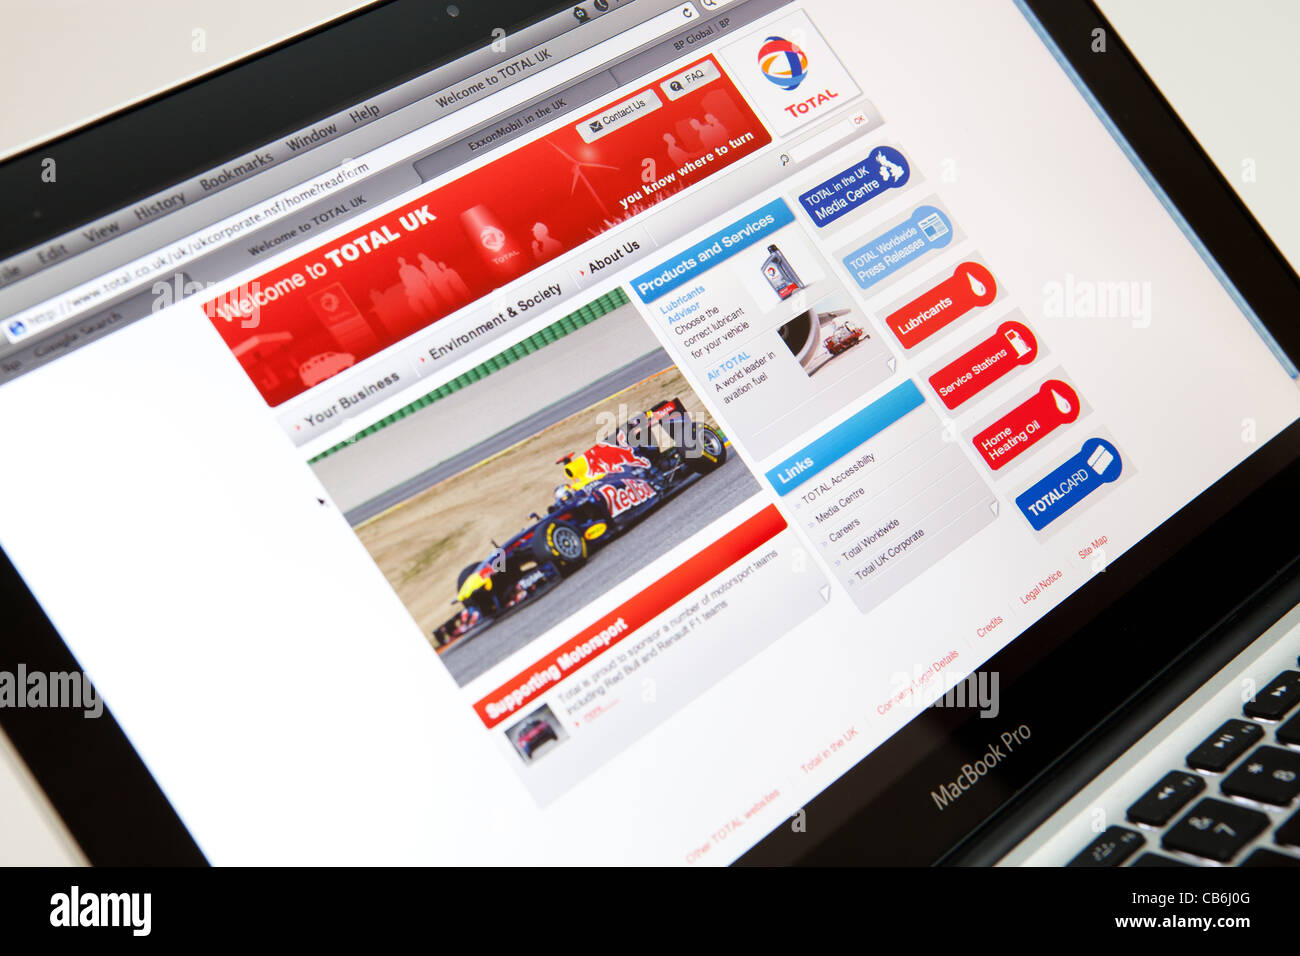 TOTAL UK Fuel Website Screen shot of web page - Stock Image